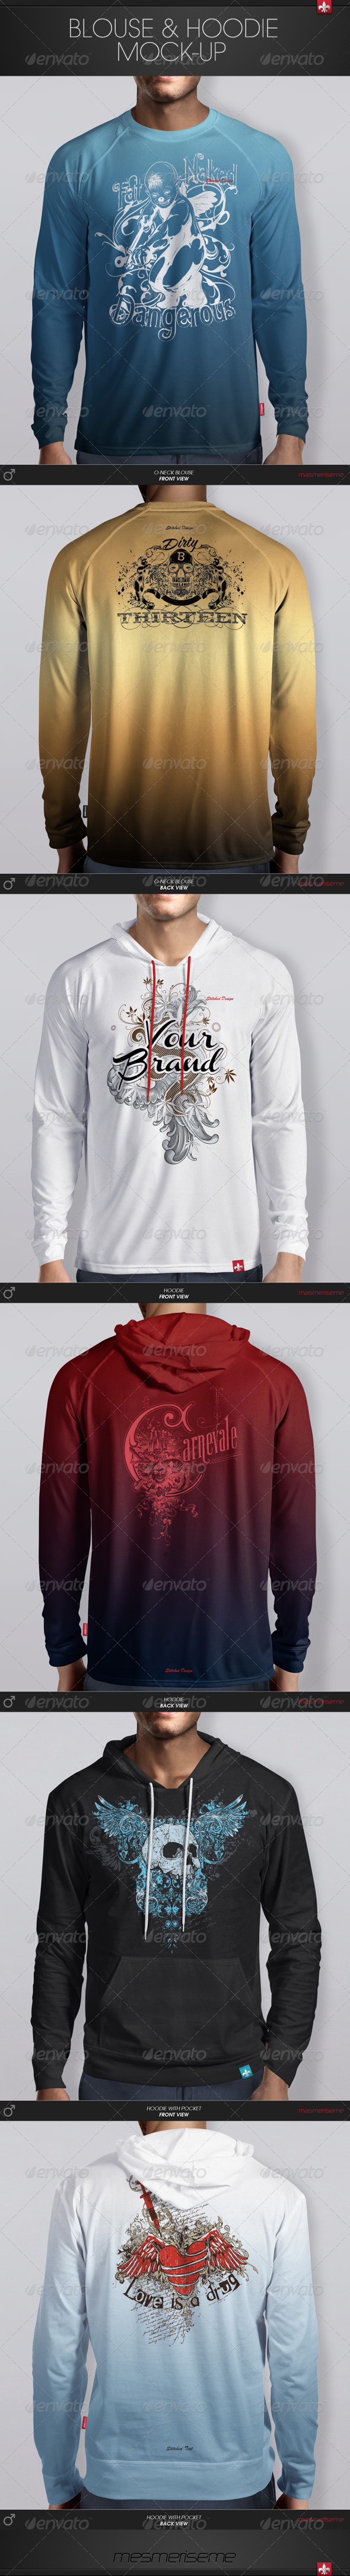 GraphicRiver Hoodie & Blouse Mock-up 6135827